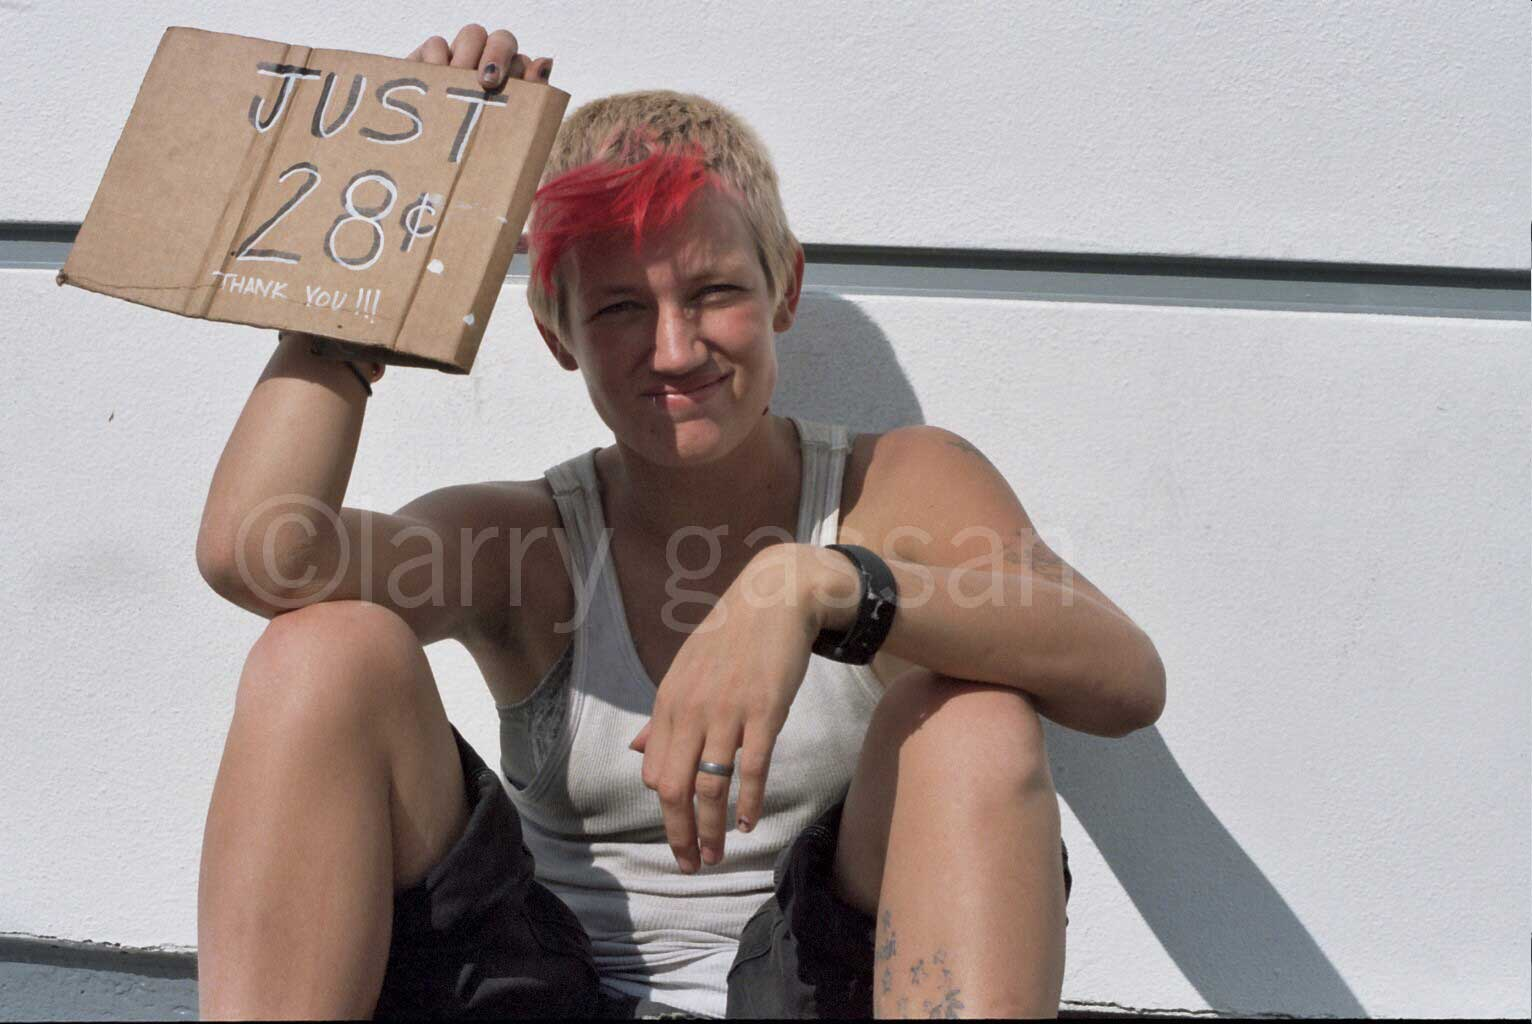 Panhandler Posts Her Day-Rate